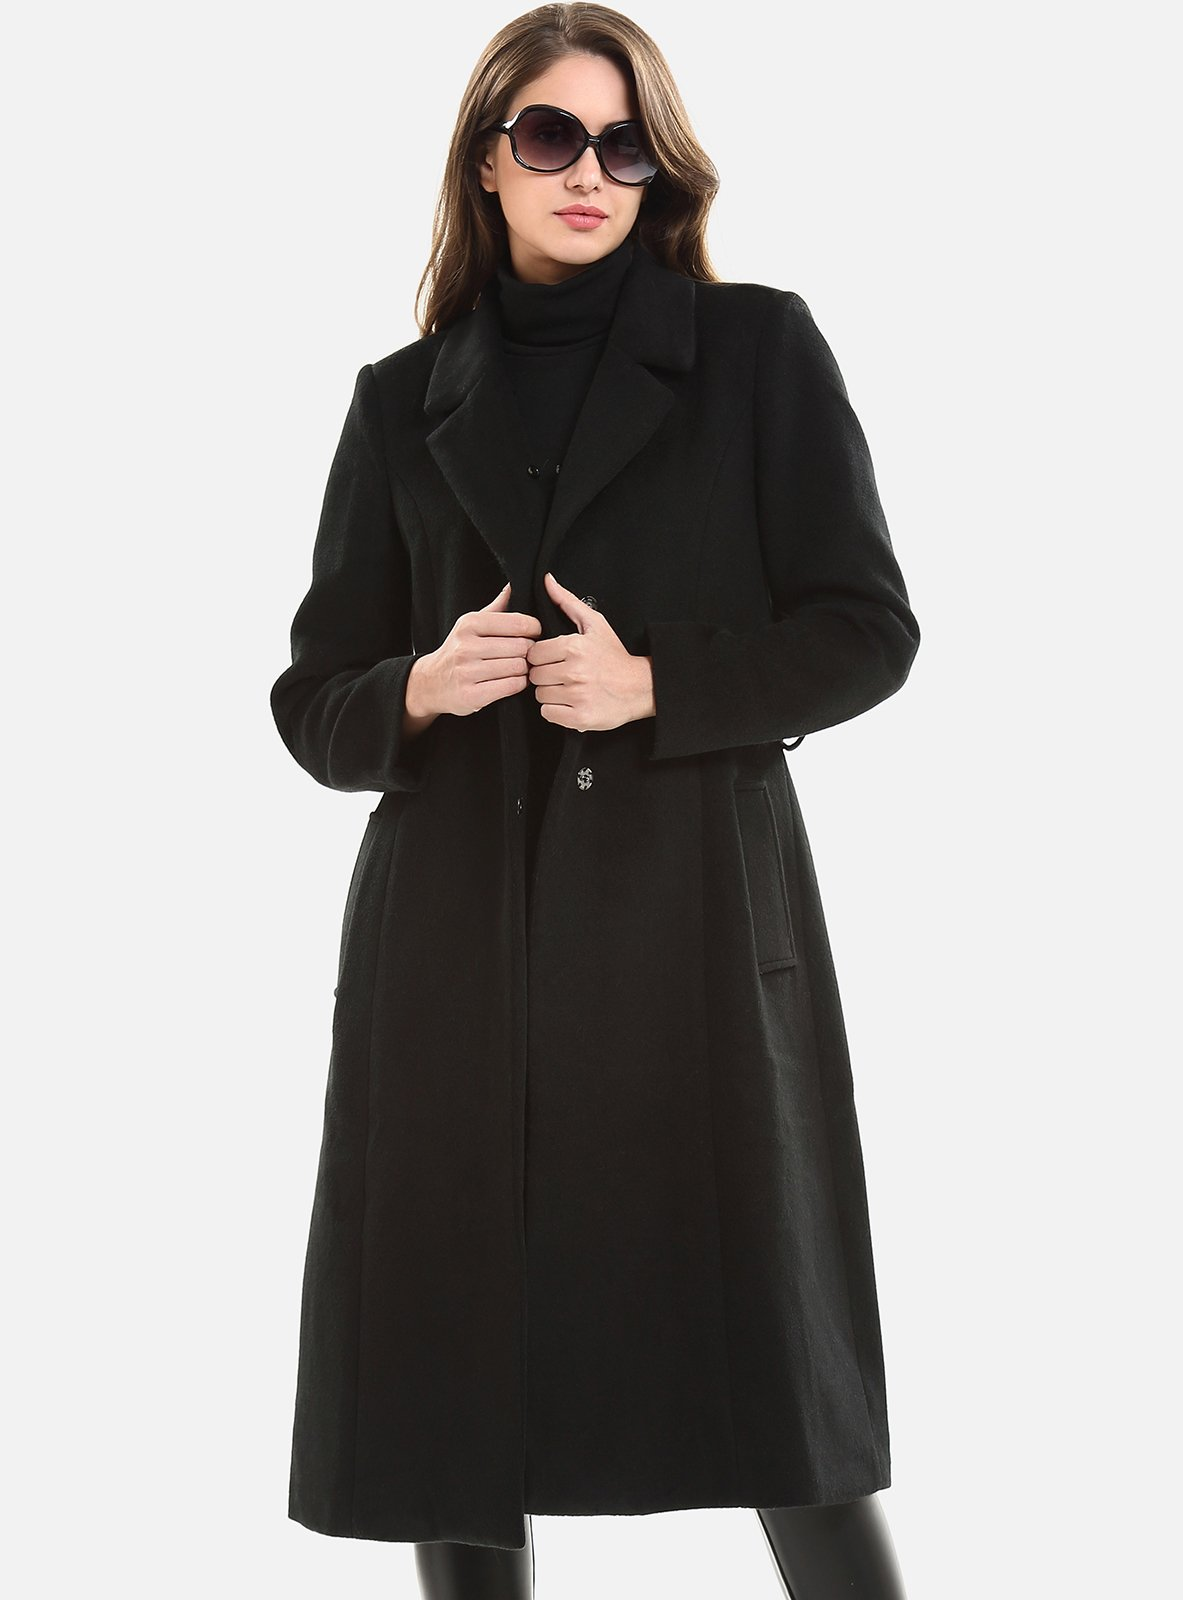 Escalier Women`s Wool Trench Belt Long Coat with Fur Collar Black 4XL by Escalier (Image #5)